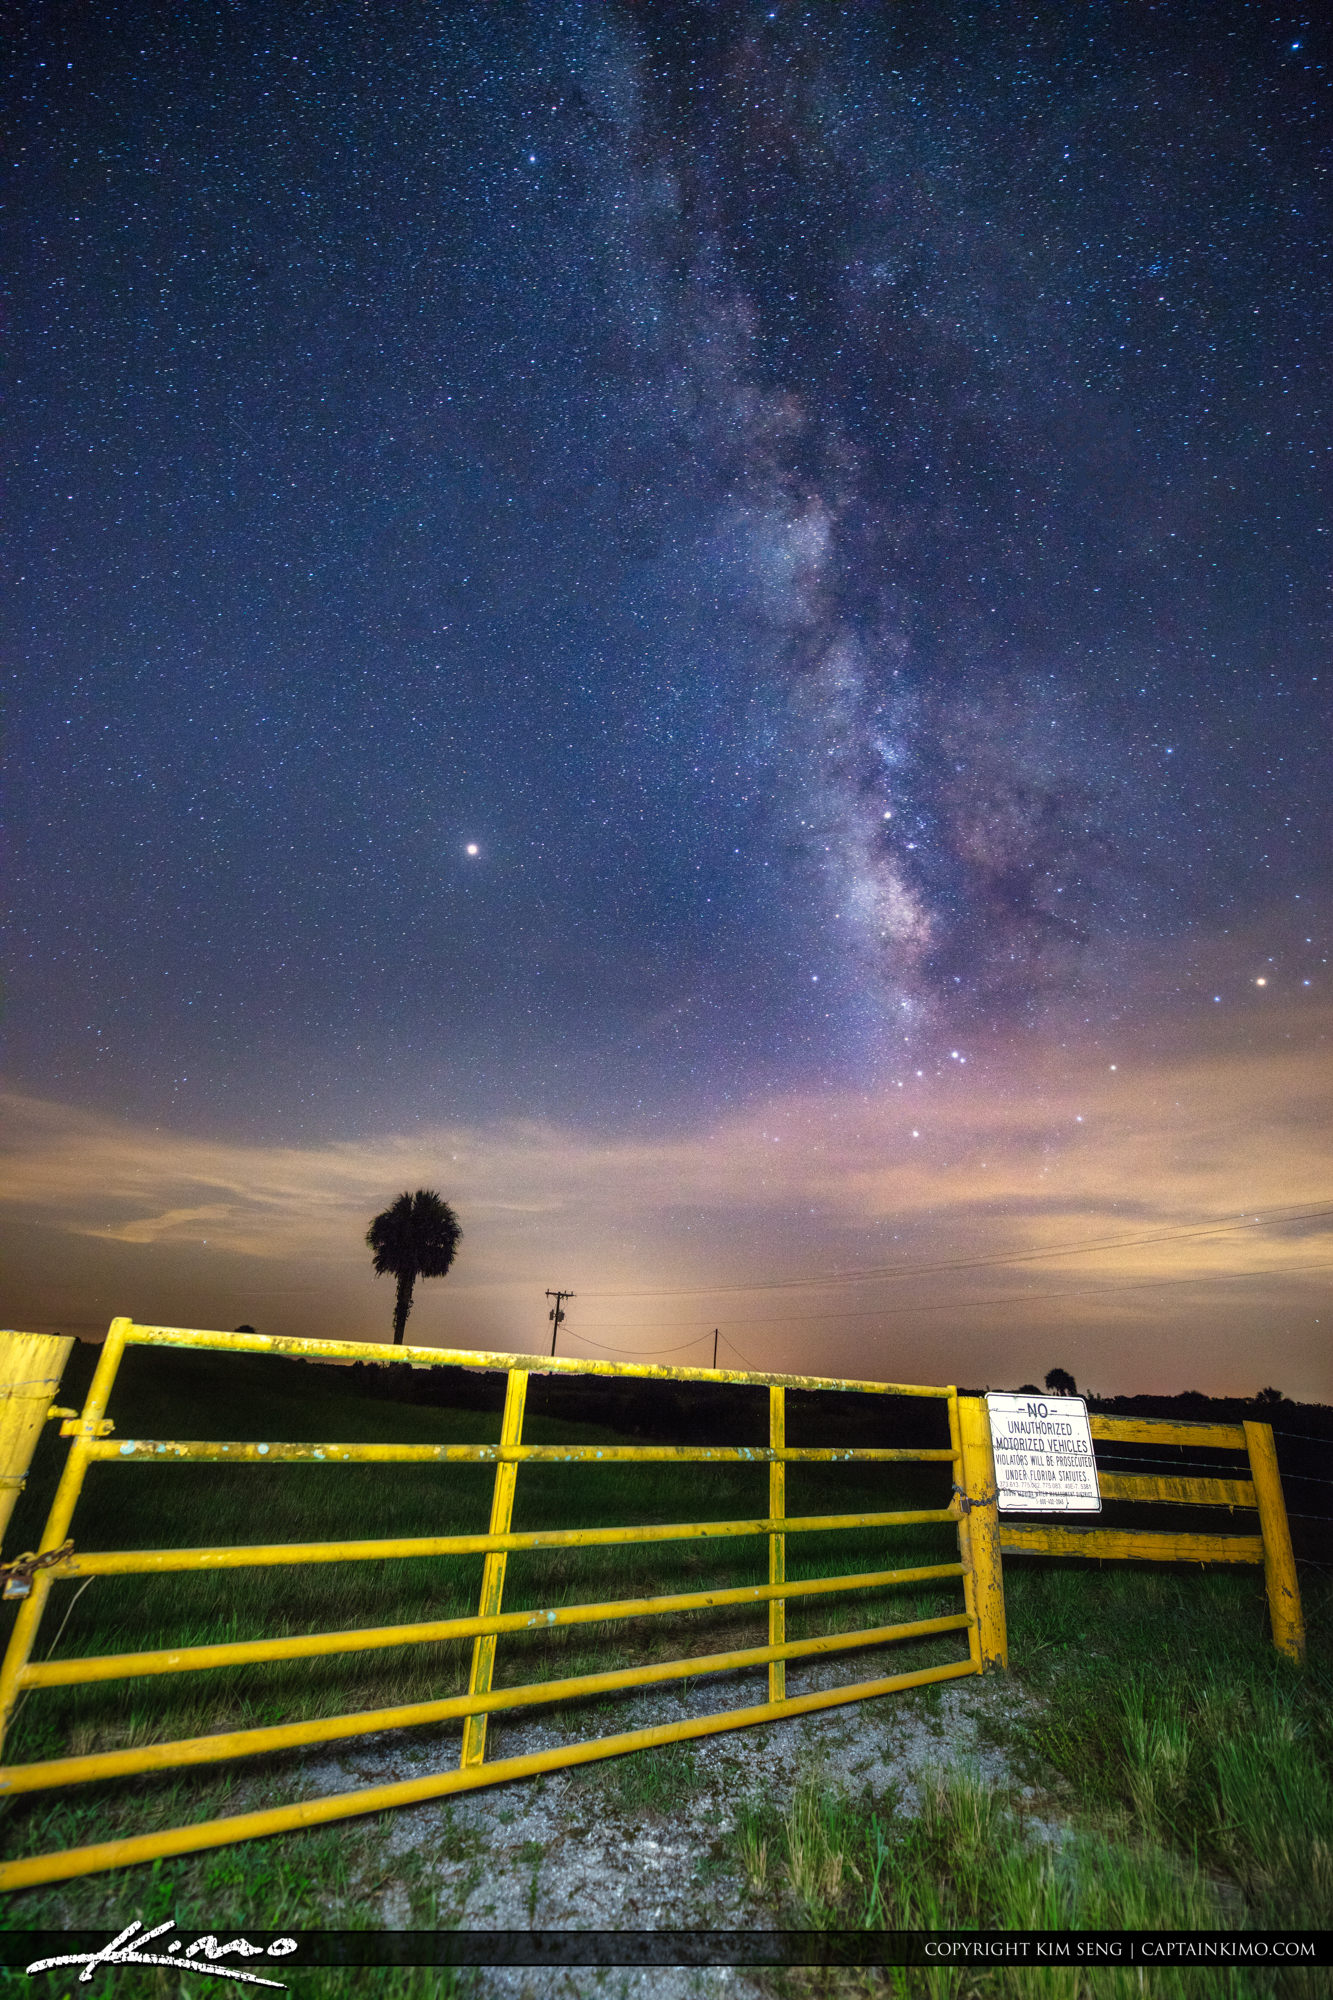 Milkyway Over Okeechobee Florida at the Gate